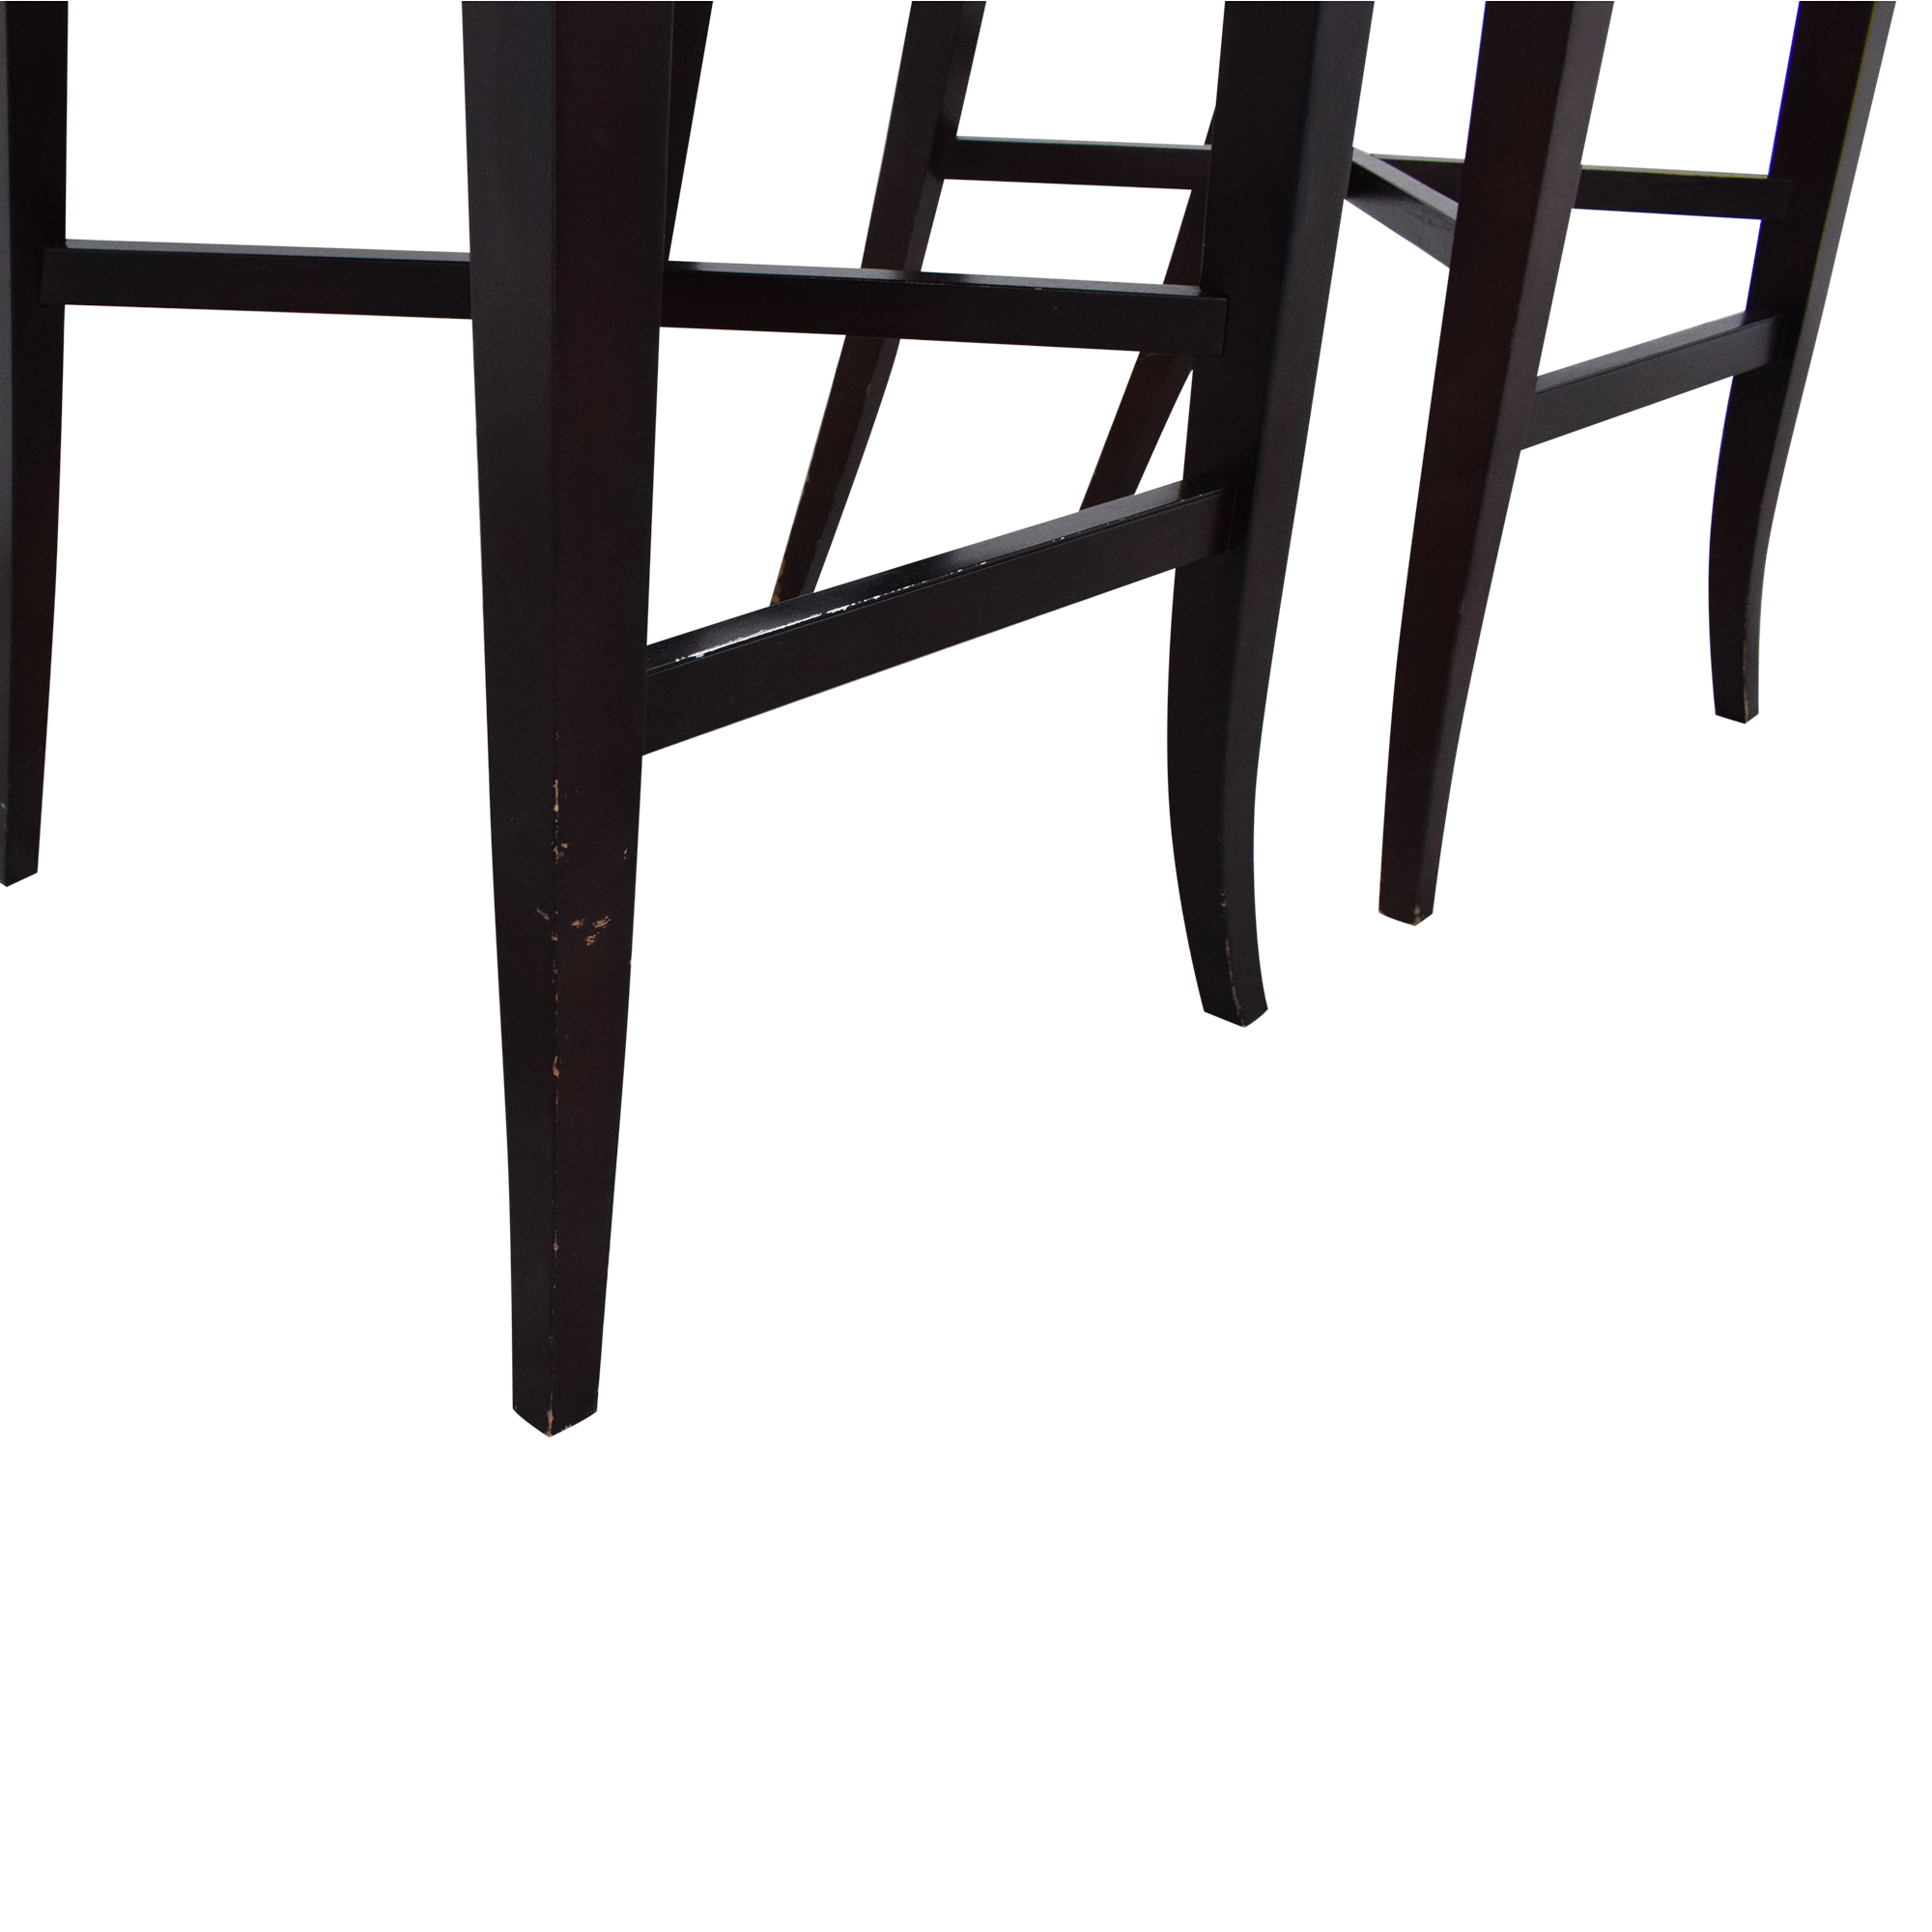 buy Crate & Barrel Upholstered Bar Stools Crate & Barrel Stools